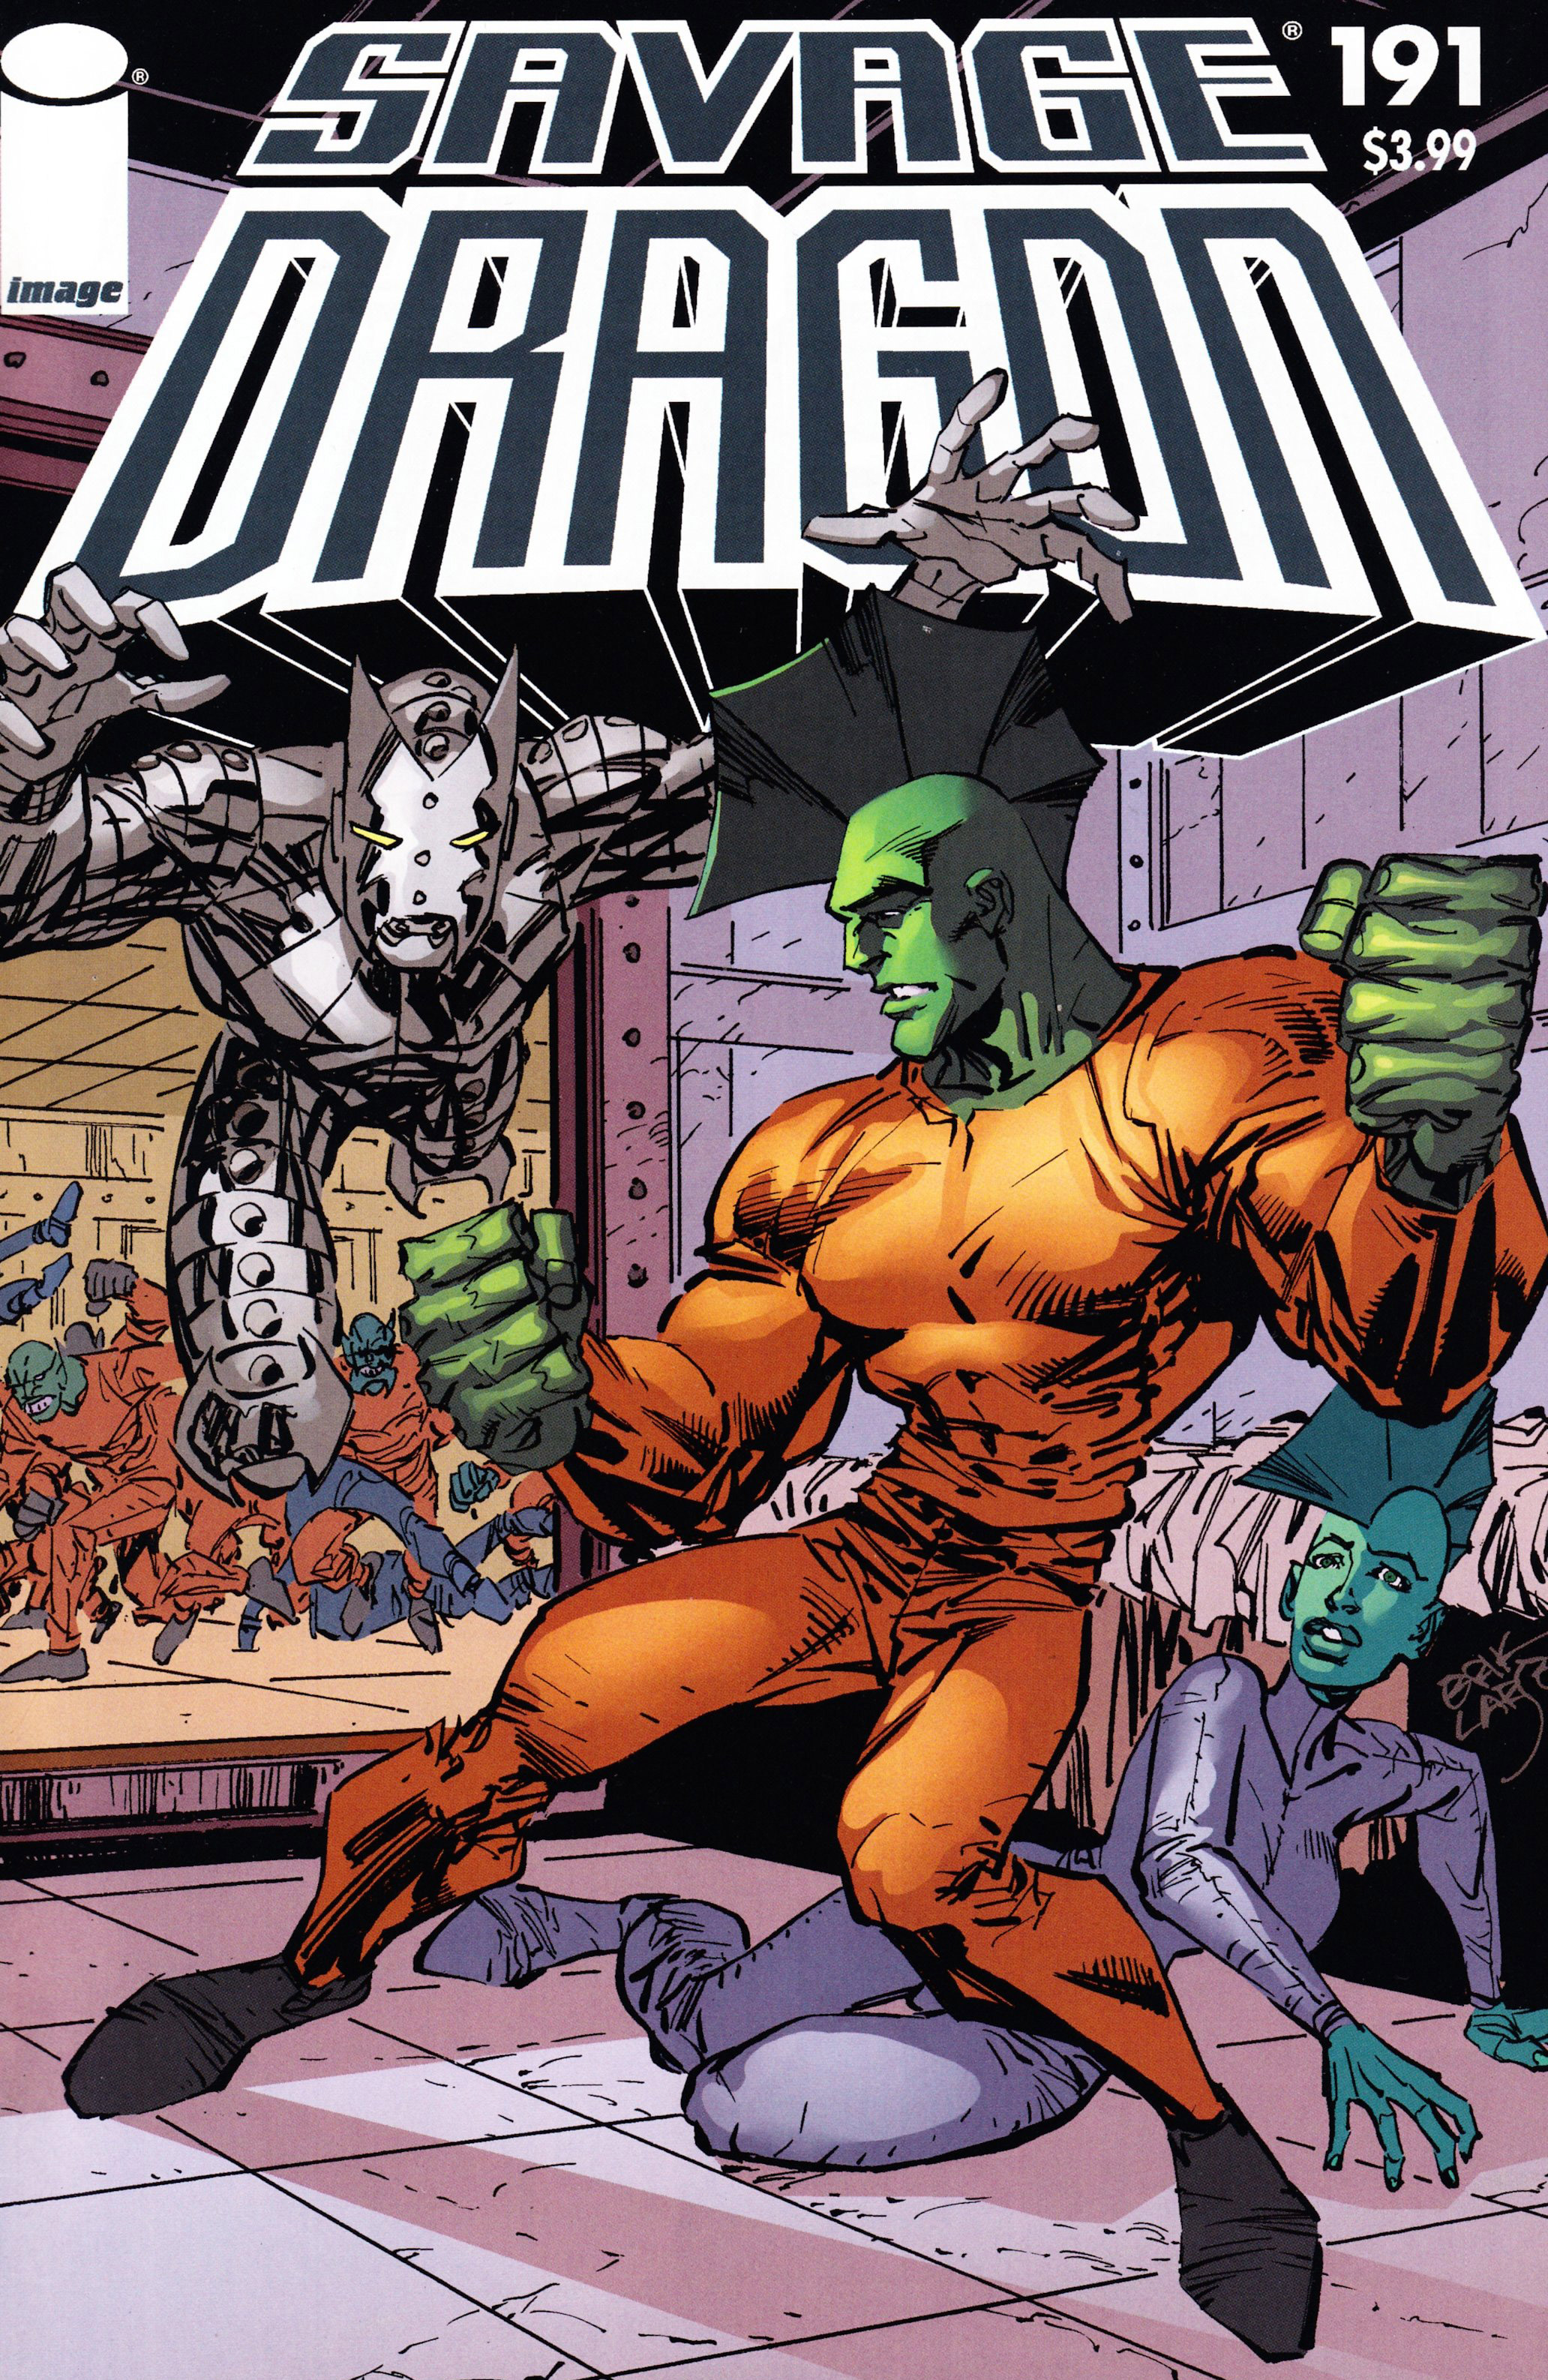 Cover Savage Dragon Vol.2 #191